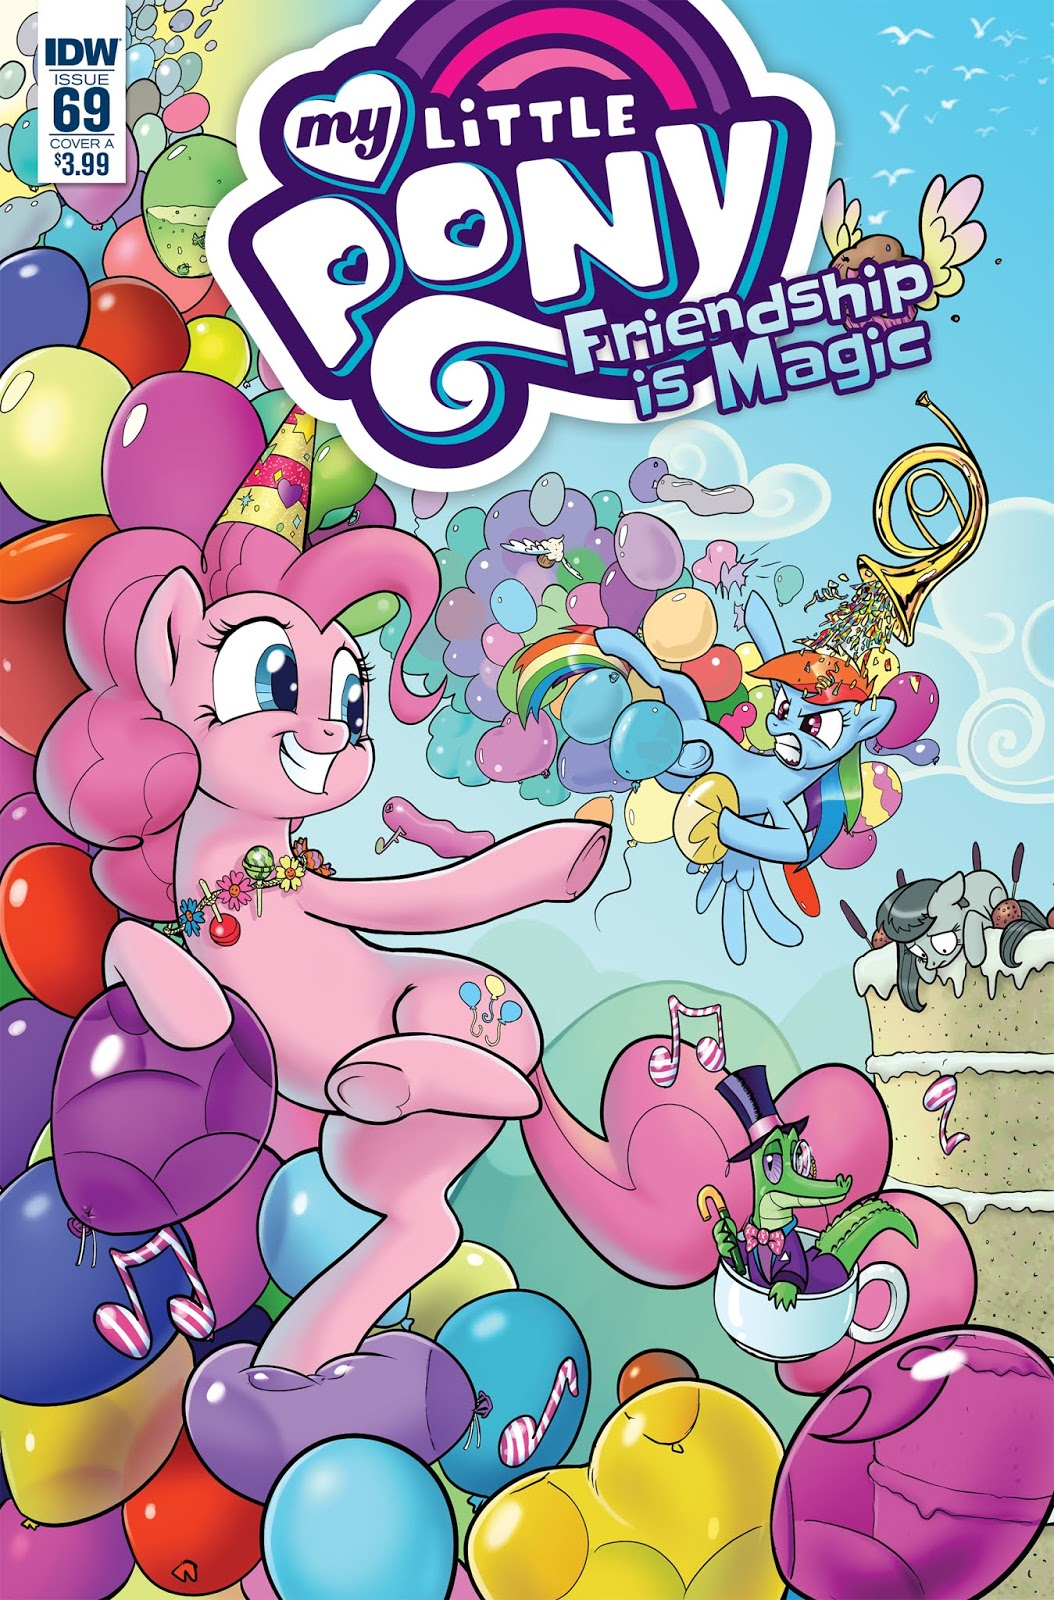 Friendship is Magic Issue 69